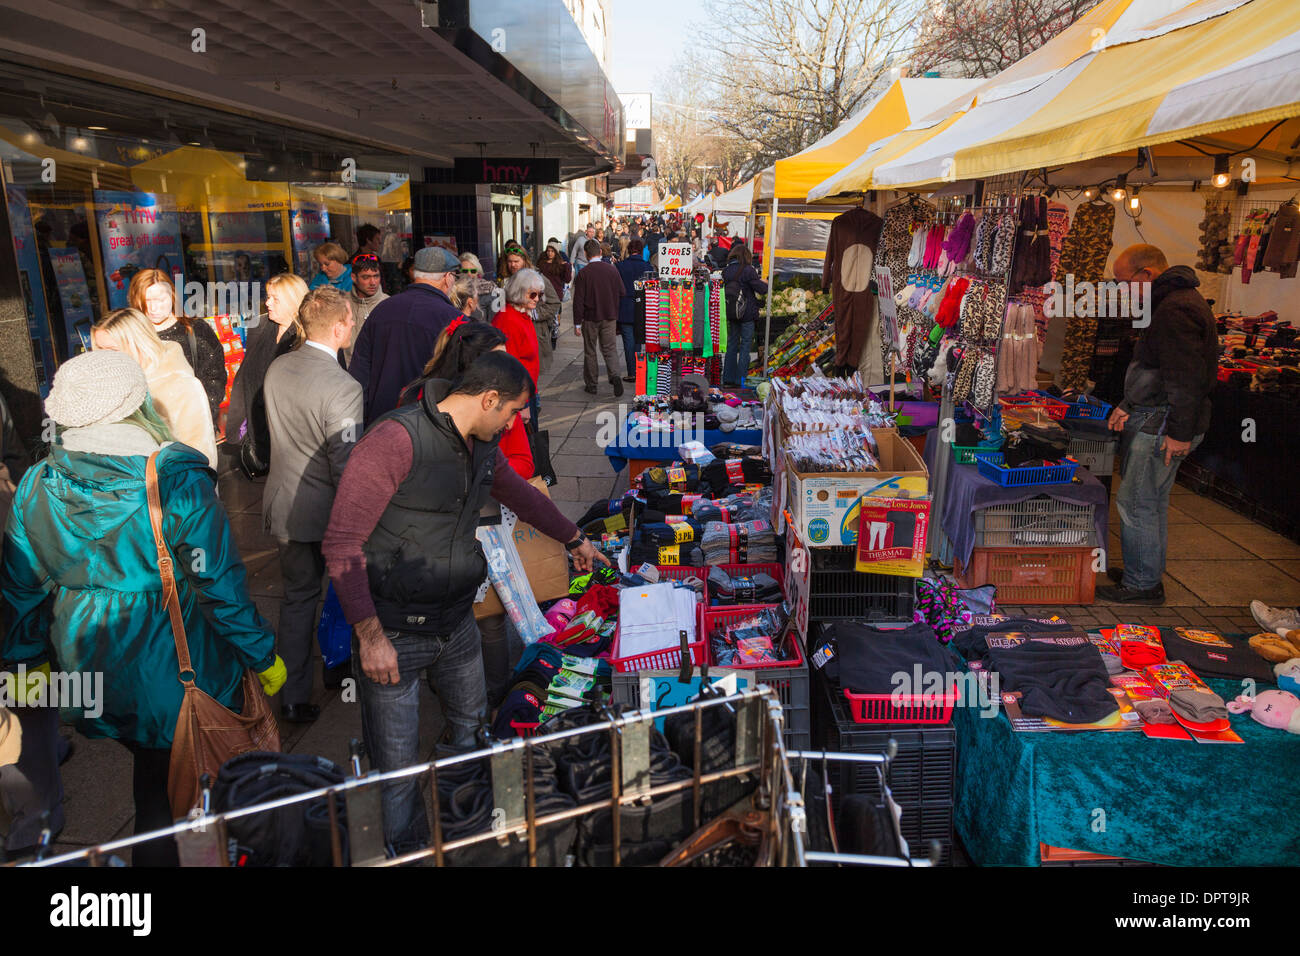 Shoppers browsing market stalls in town centre high street. - Stock Image